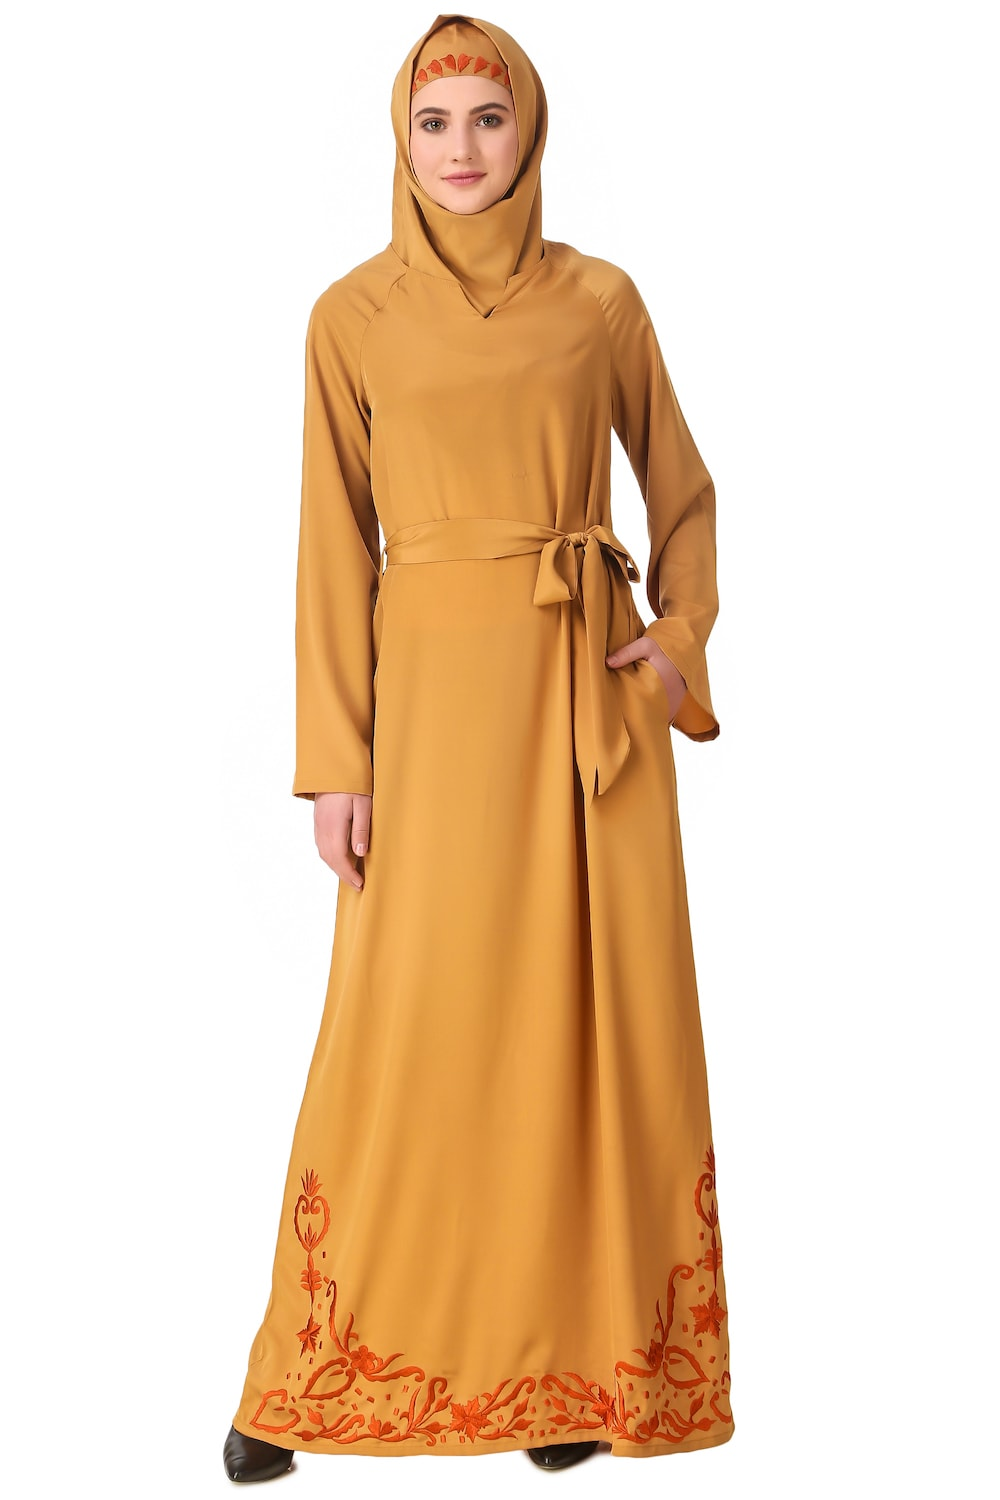 Raglan Sleeves Floral Embroidered Bottom Abaya with Waist Belt